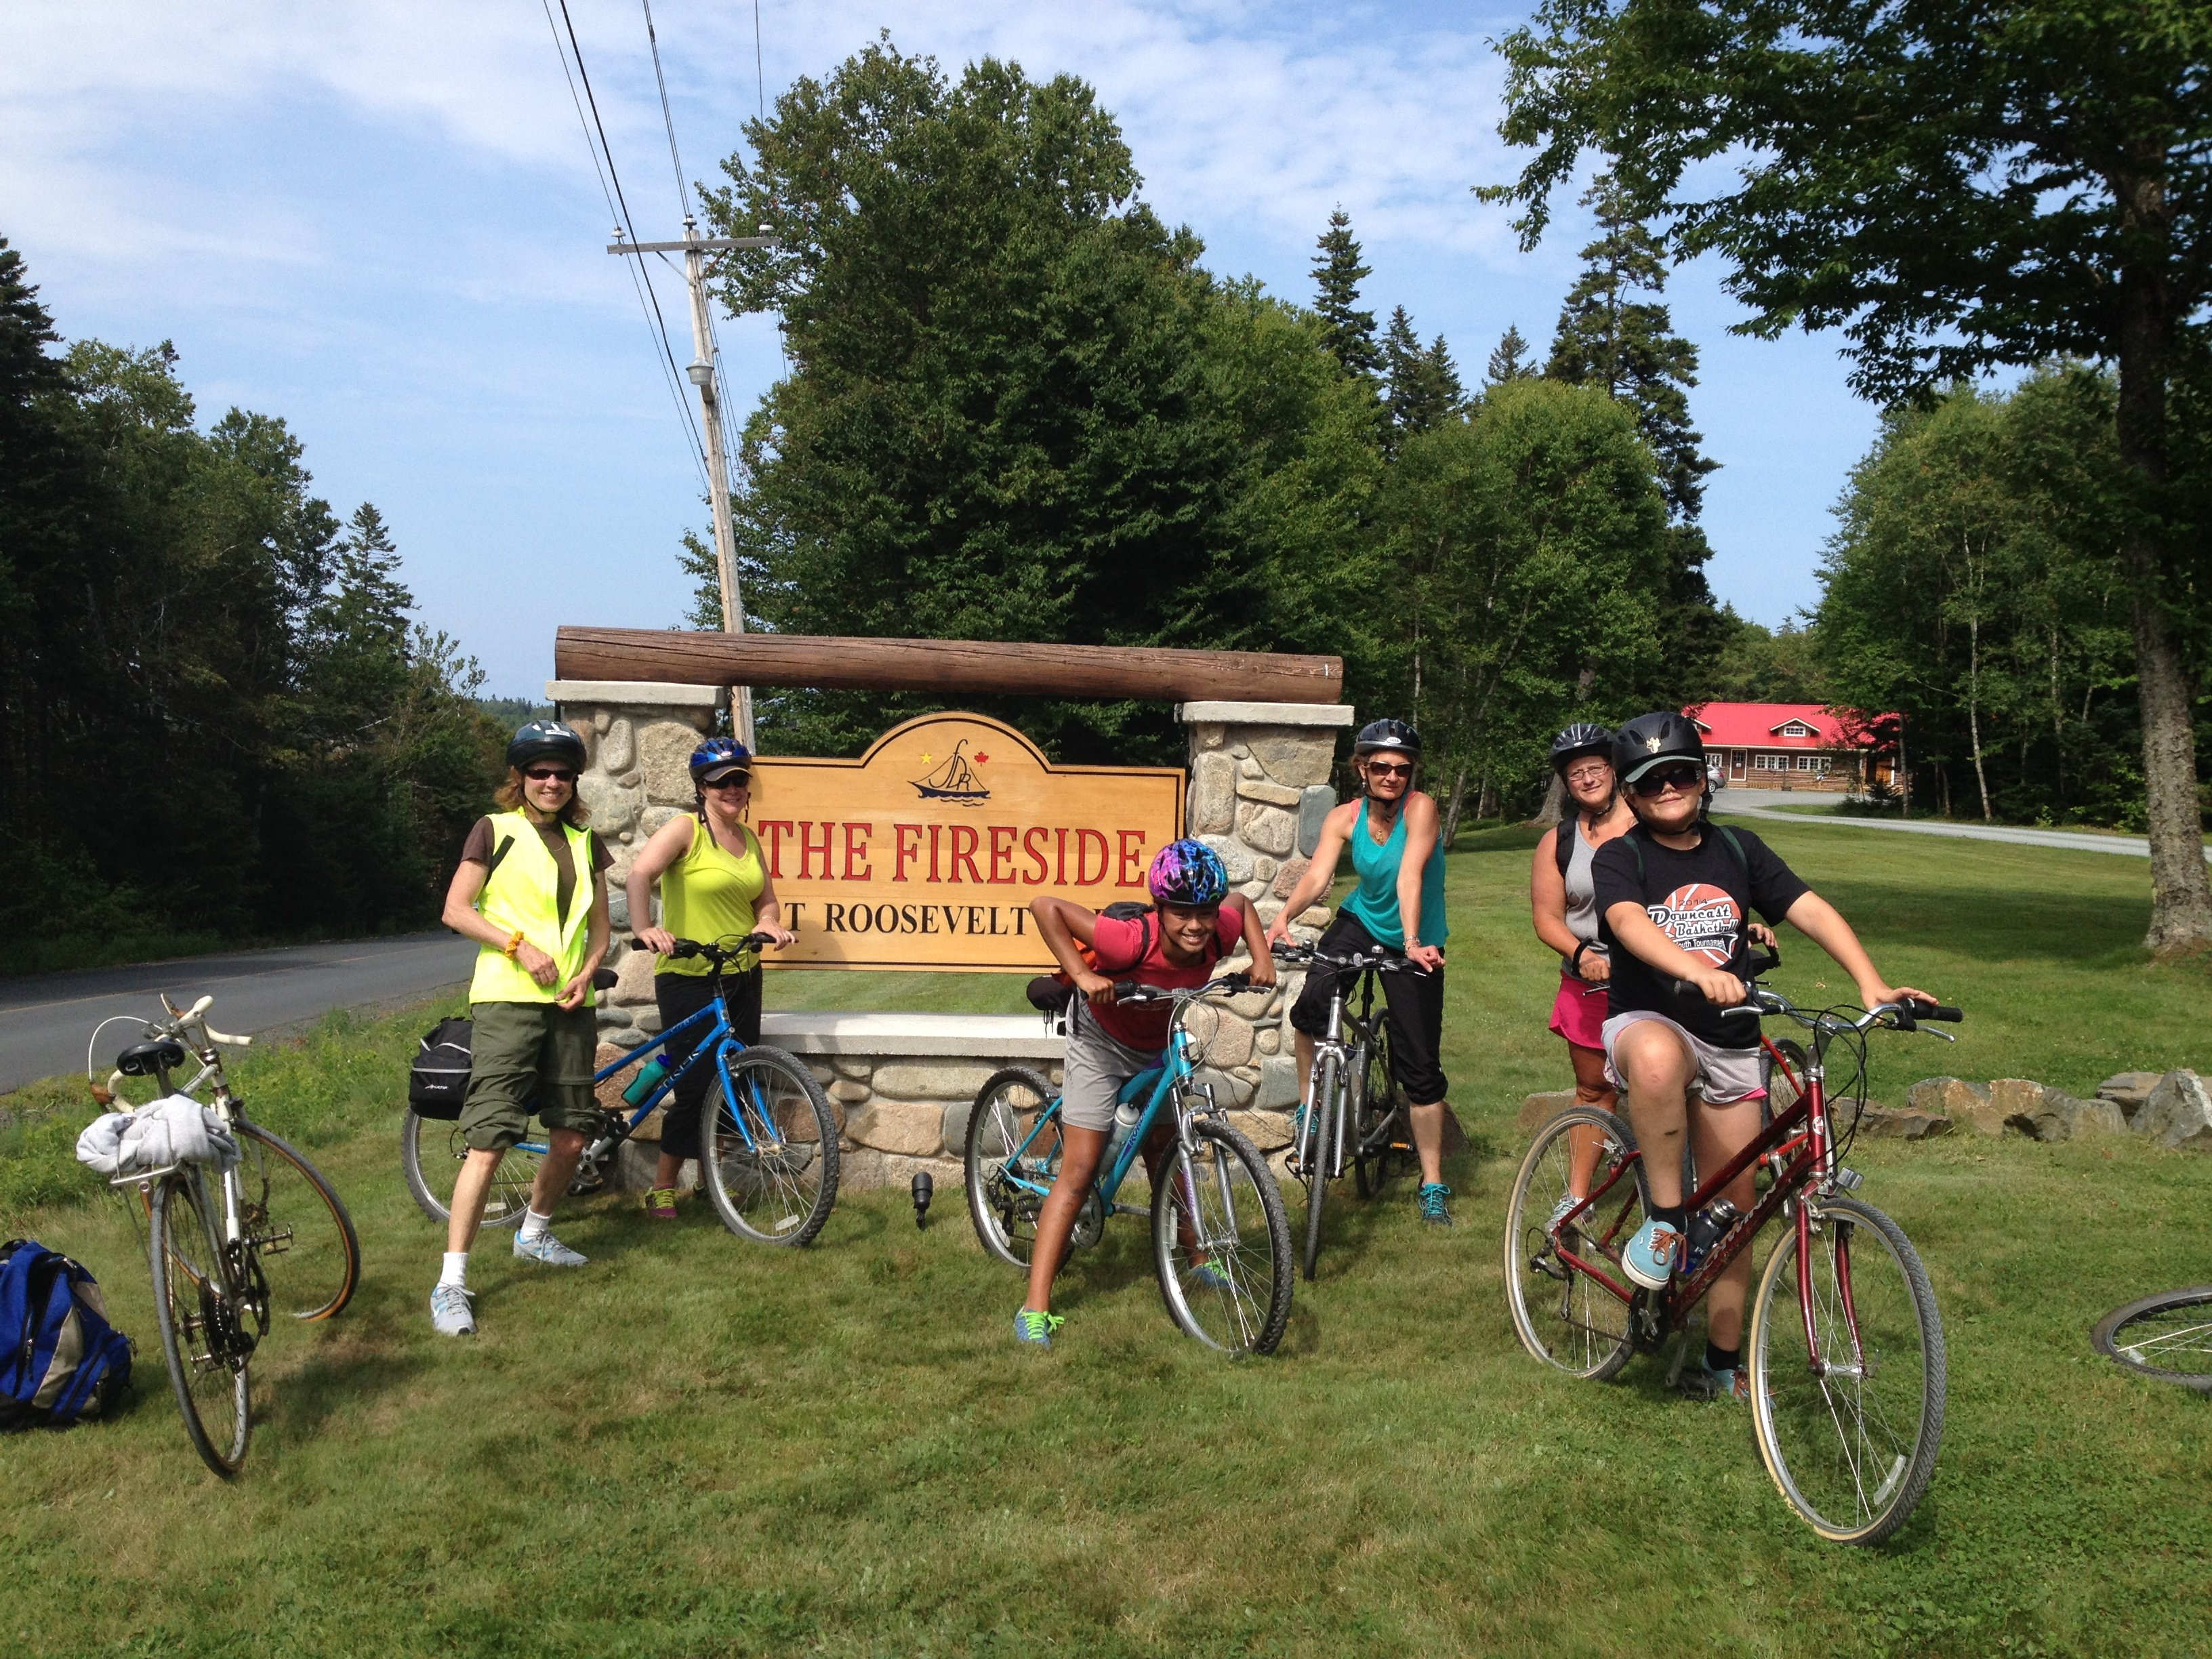 Cyclists after lunch at the Fireside on Campobello